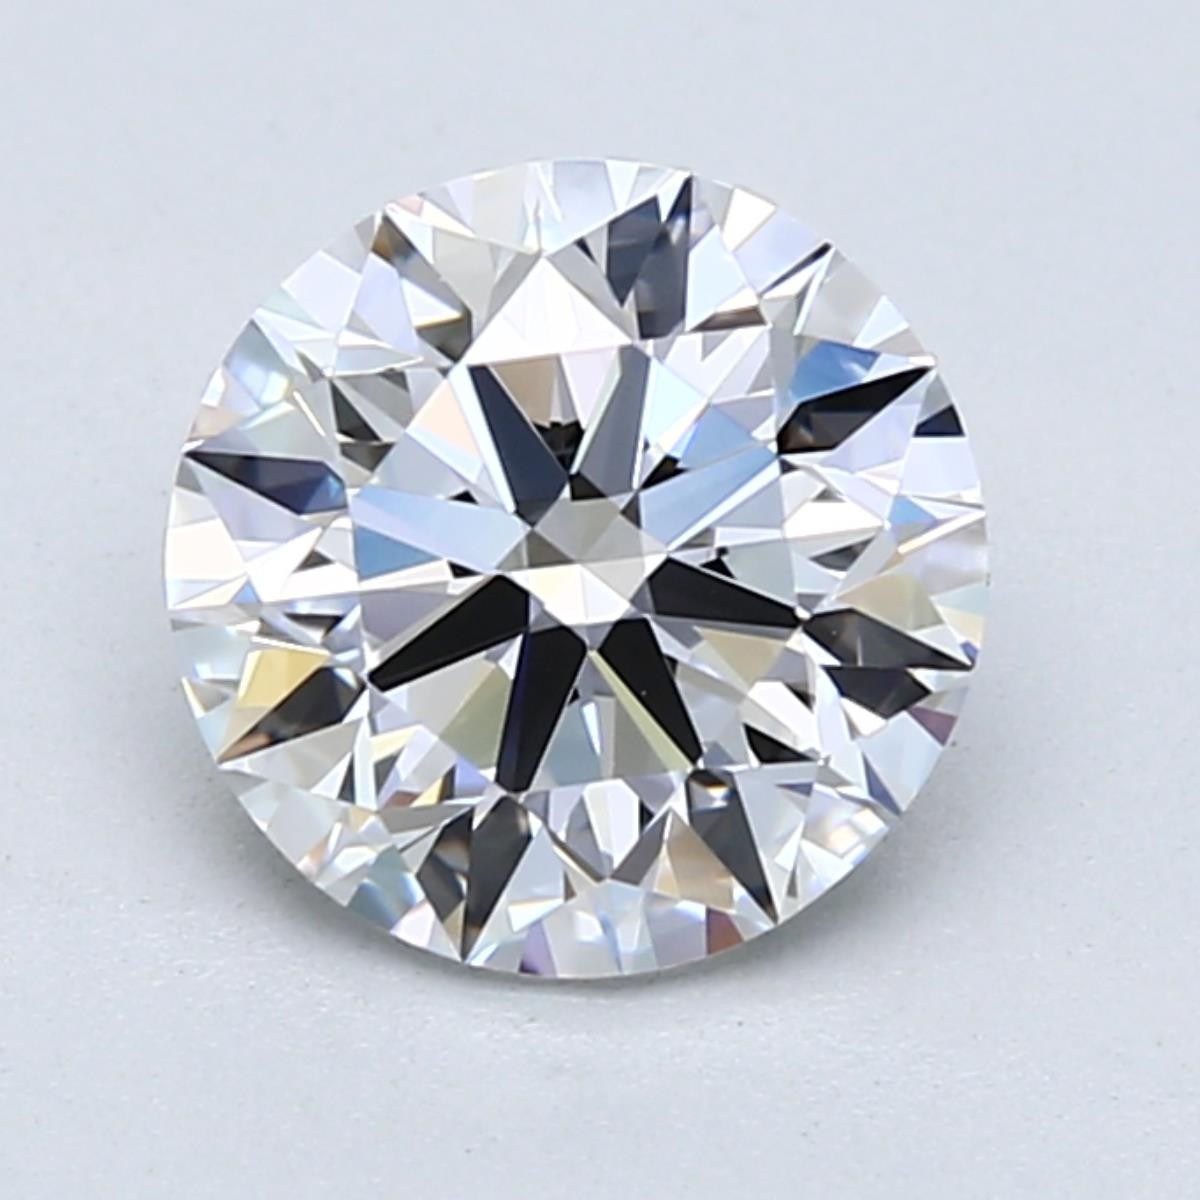 2 carat d color diamond with VVS1 clarity